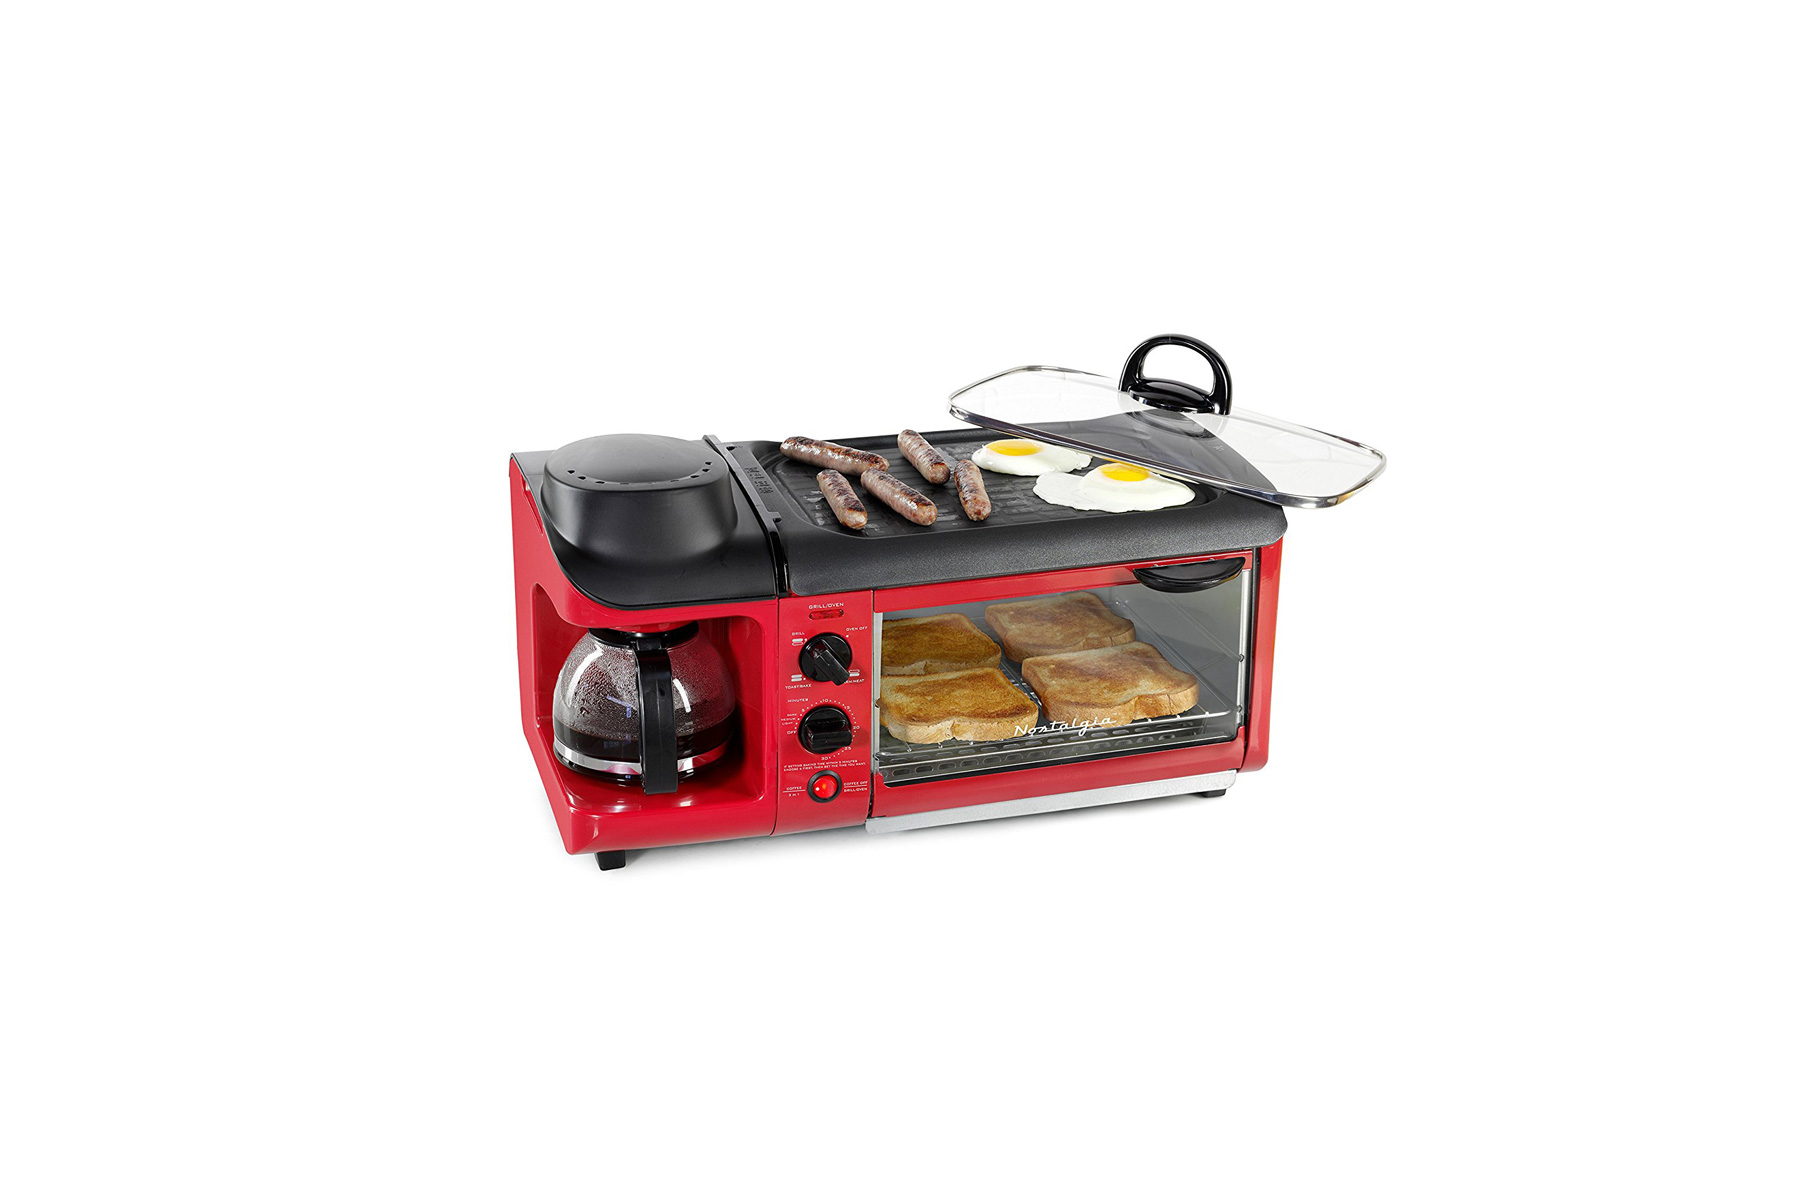 Retro Breakfast Station for Amazon Prime Father's Day